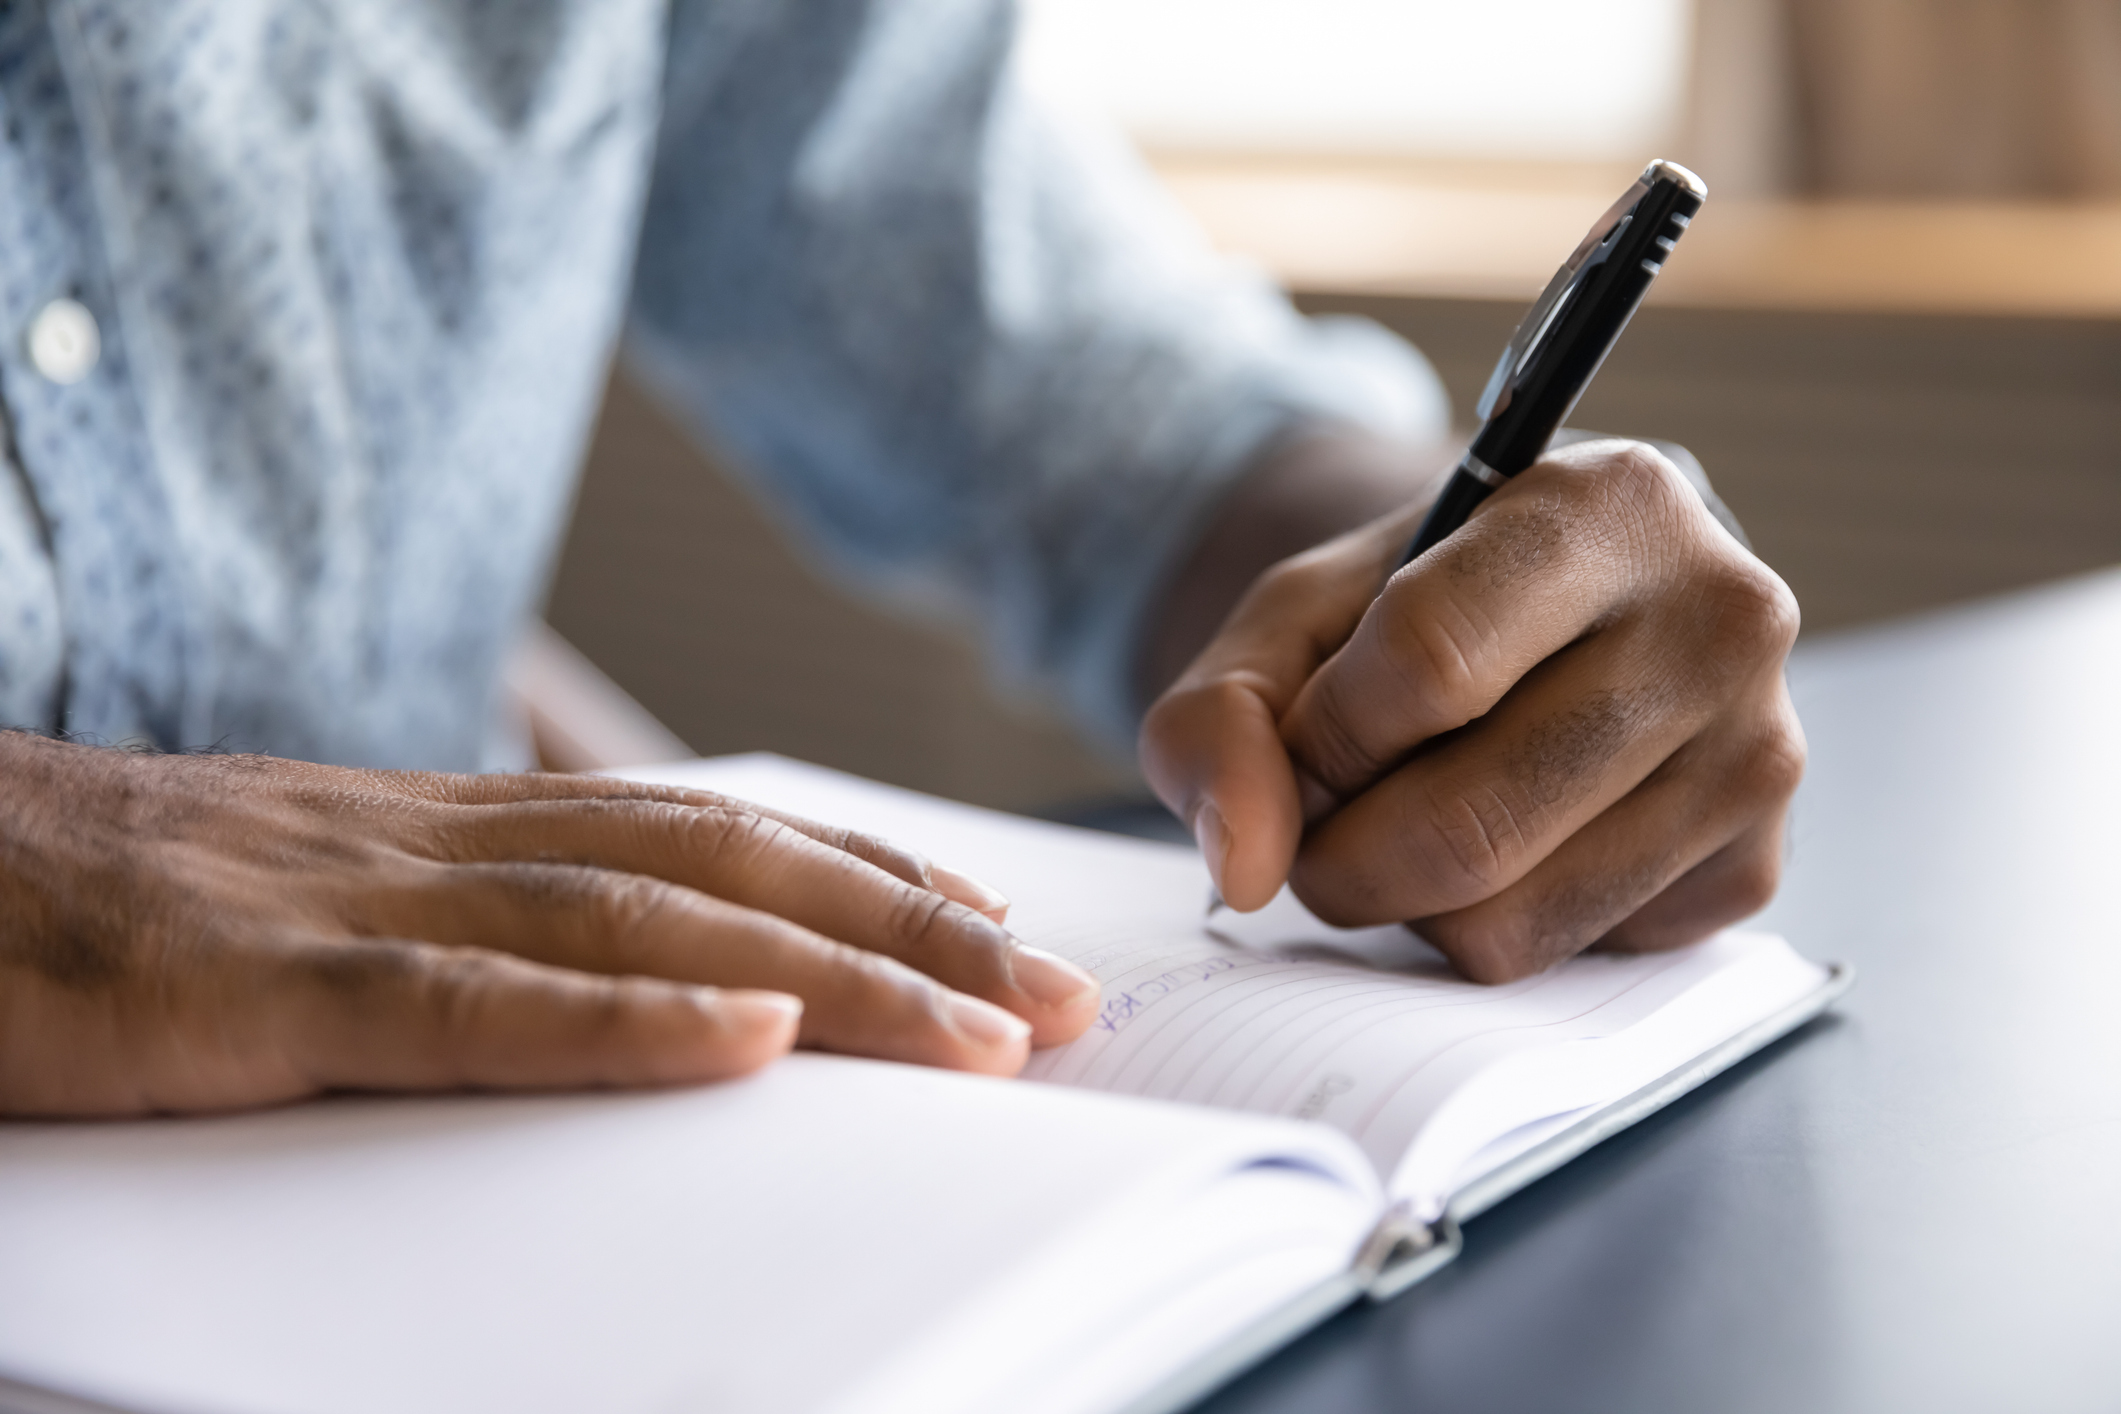 Man writing down his accountability and recovery goals